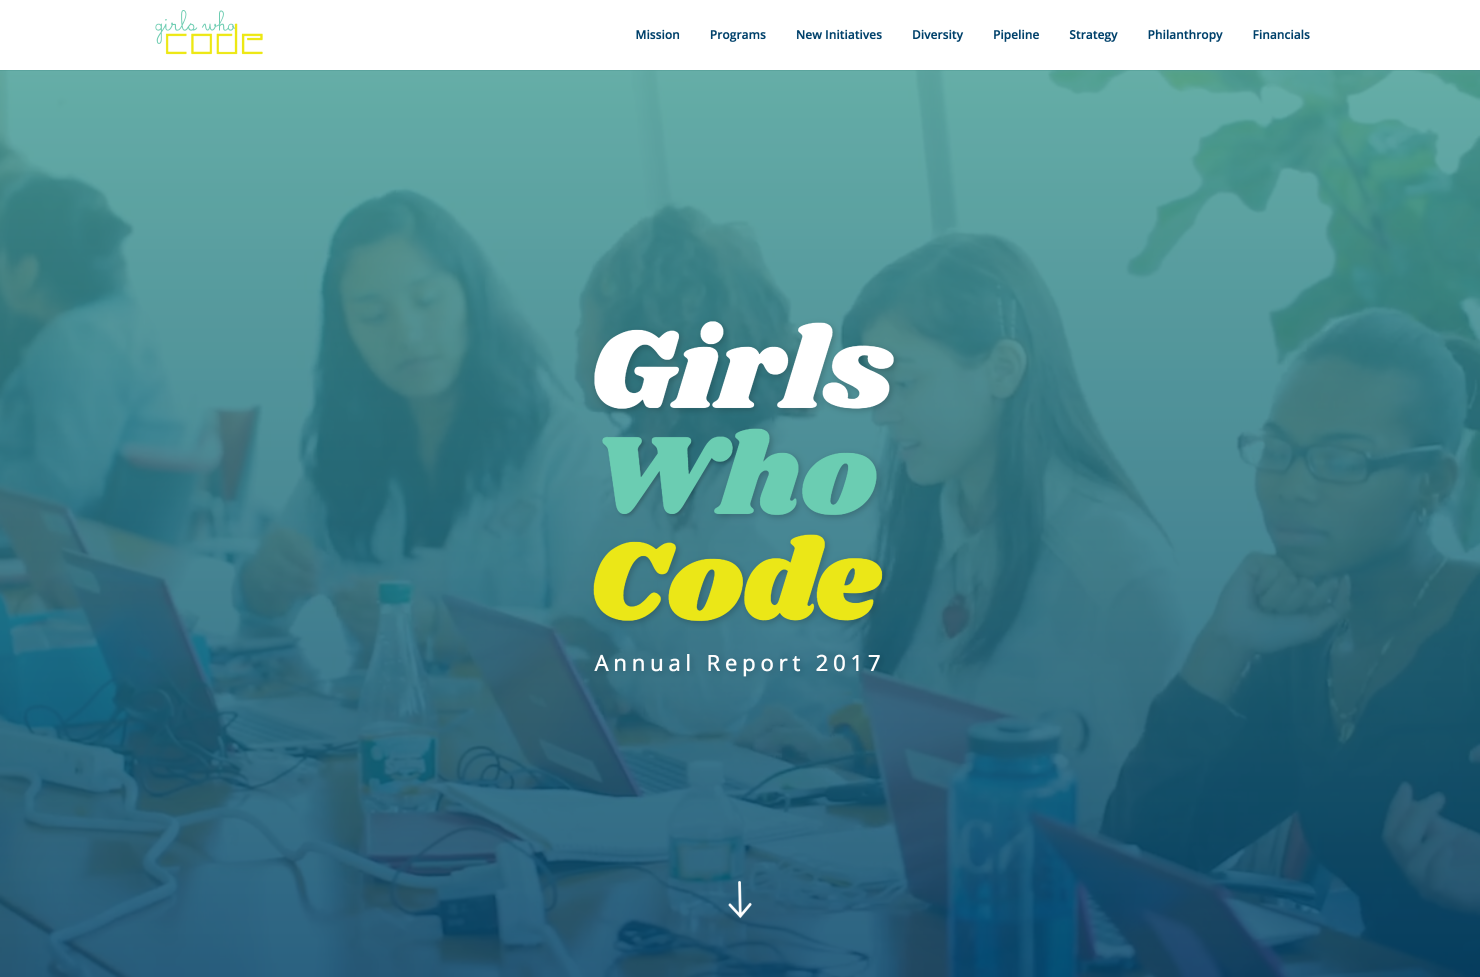 Girls Who Code - Annual Report 2017